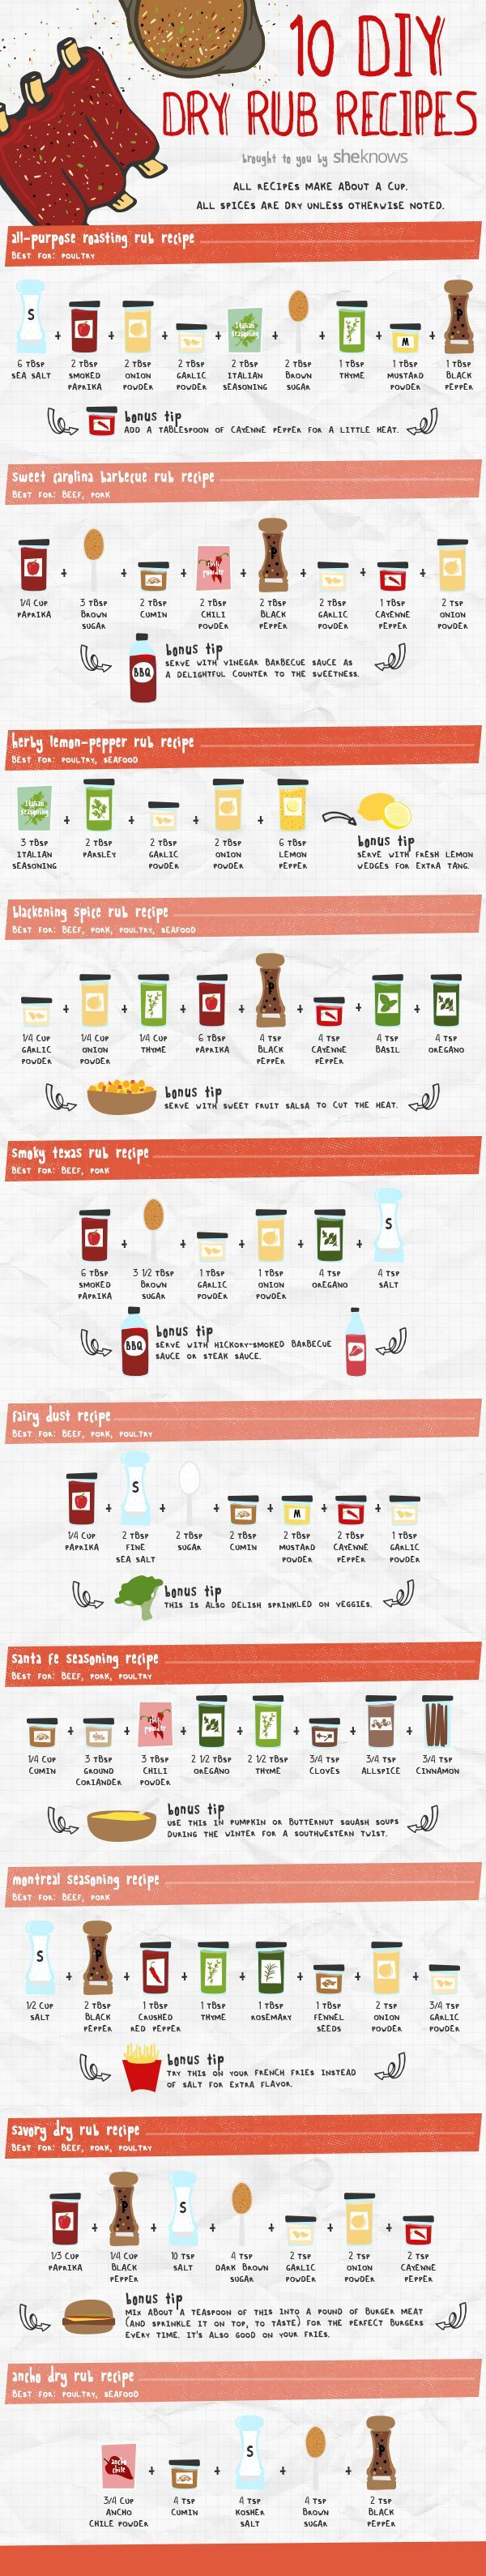 10 Dry rub recipes to up your barbecue game (INFOGRAPHIC) - Illustrations and design made for SheKnows.com